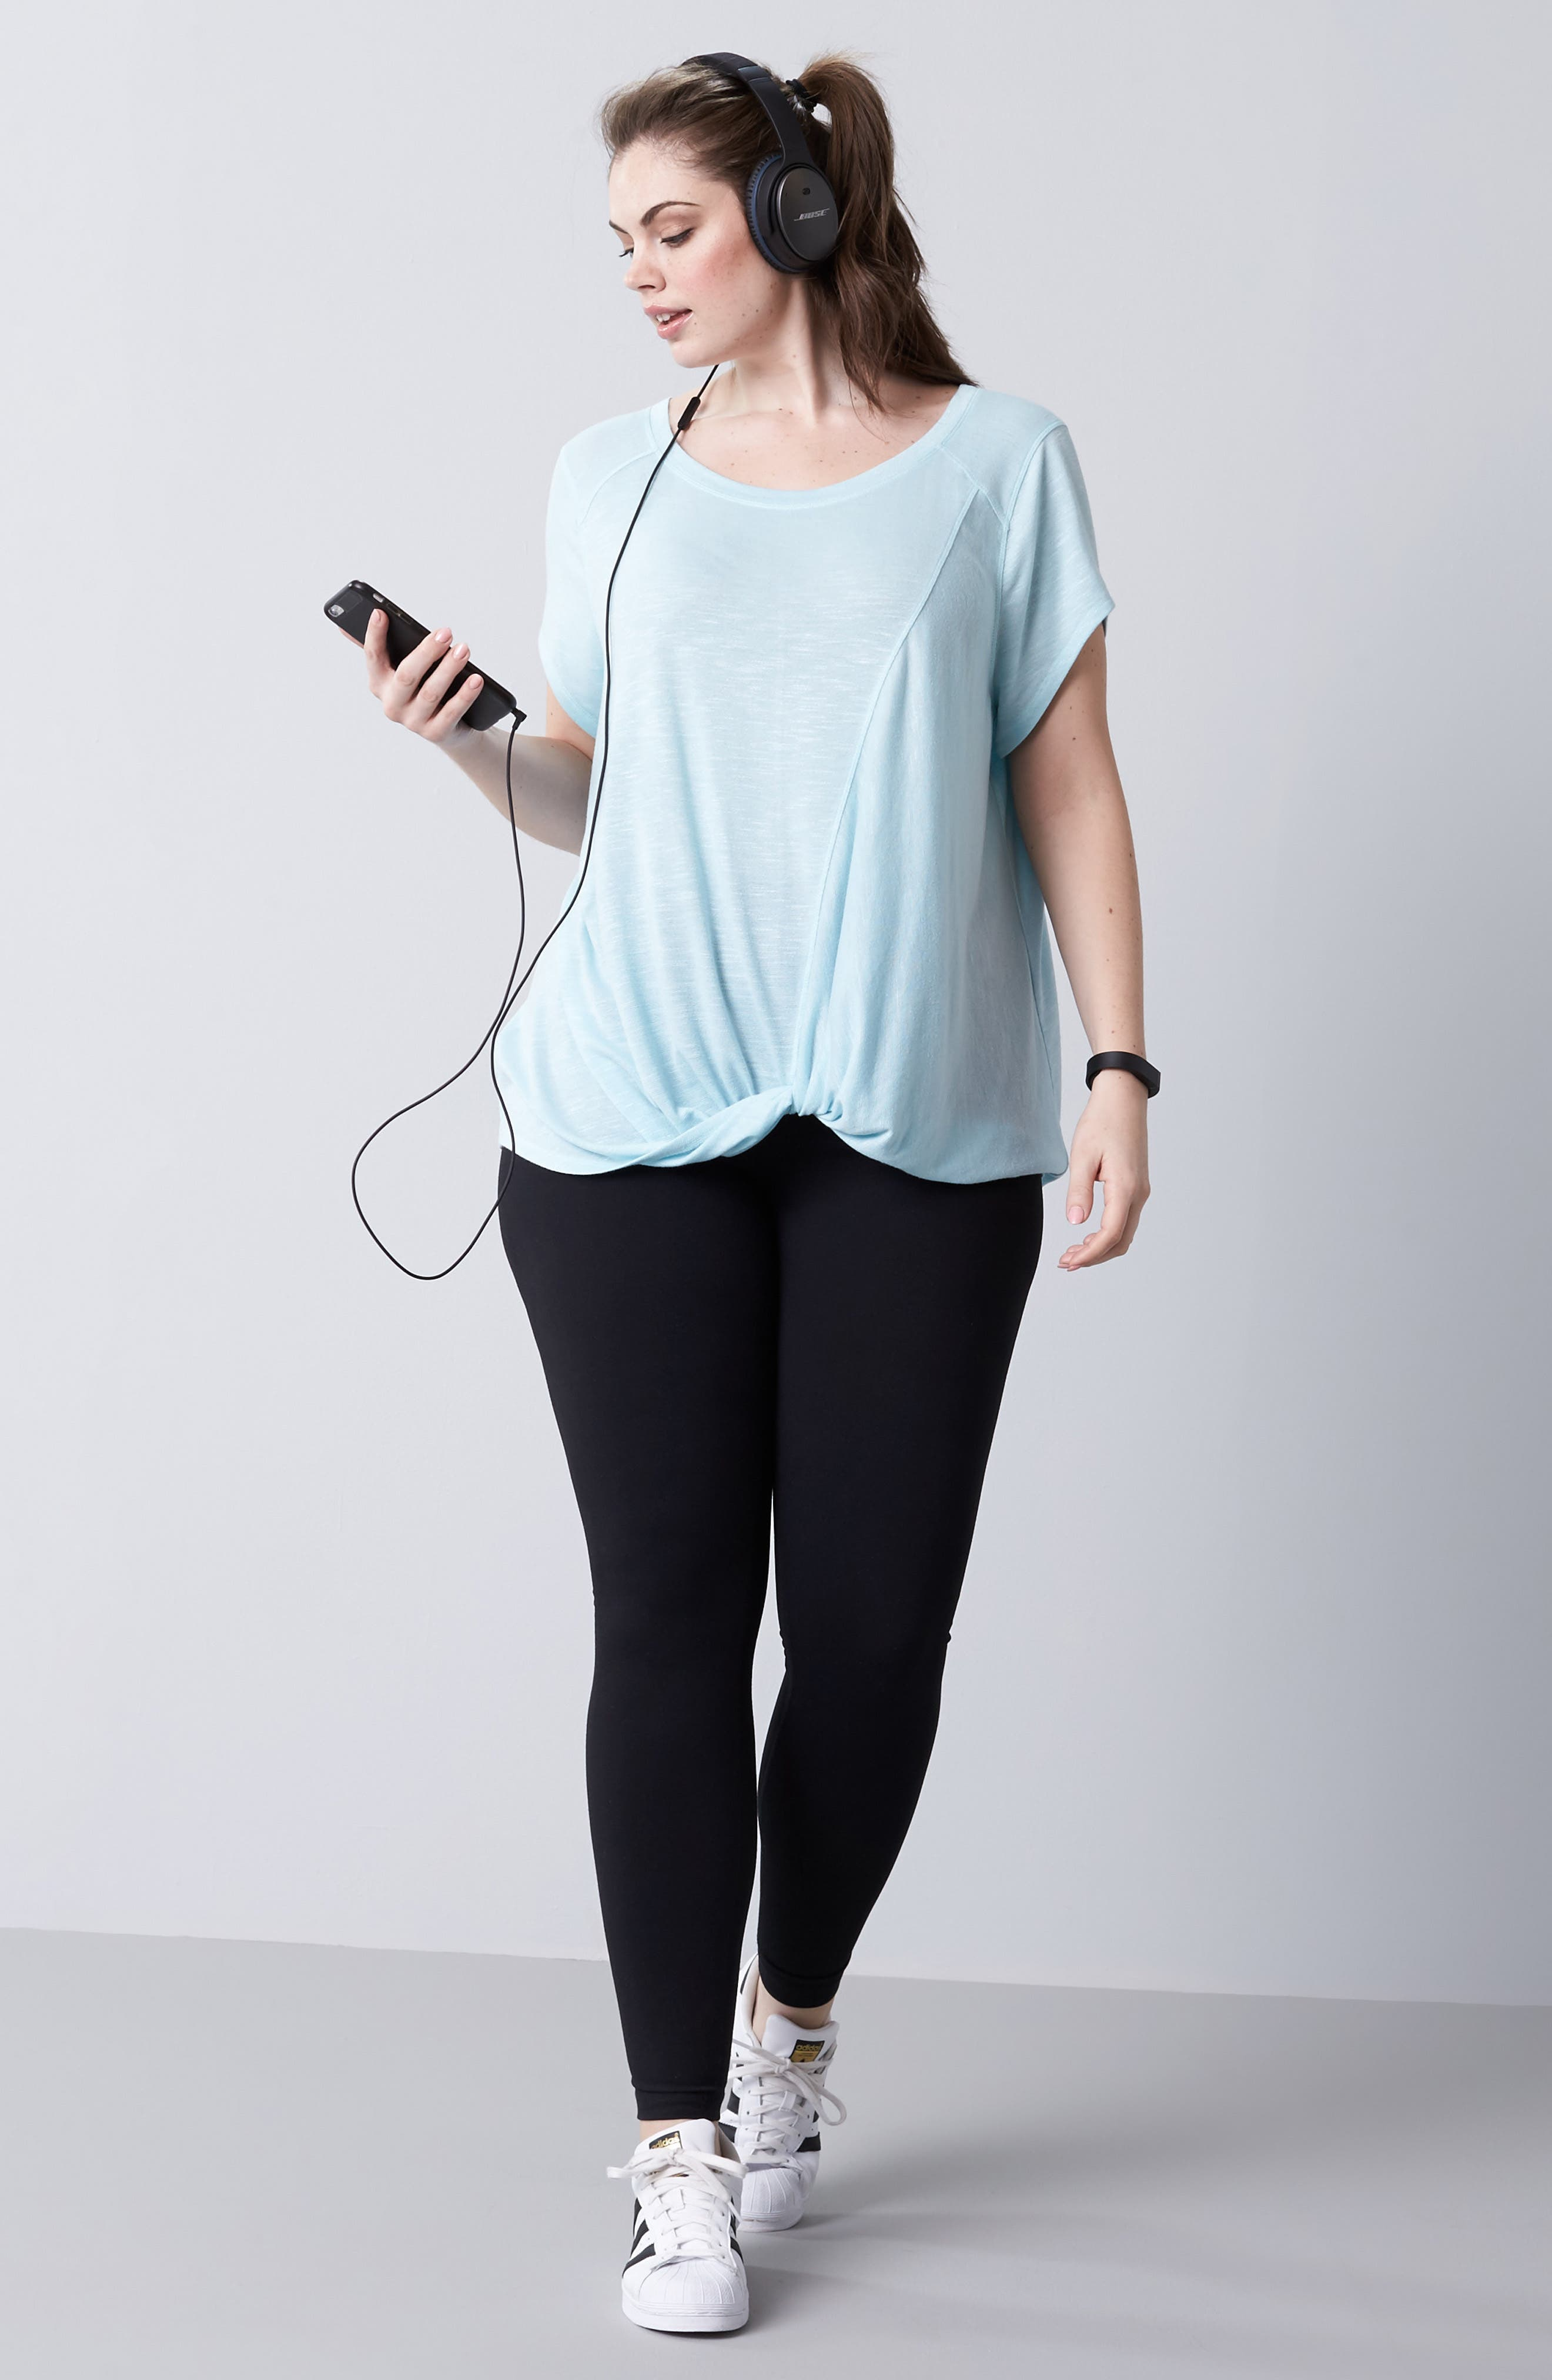 Zella Tee & Leggings Outfit with Accessories (Plus Size)